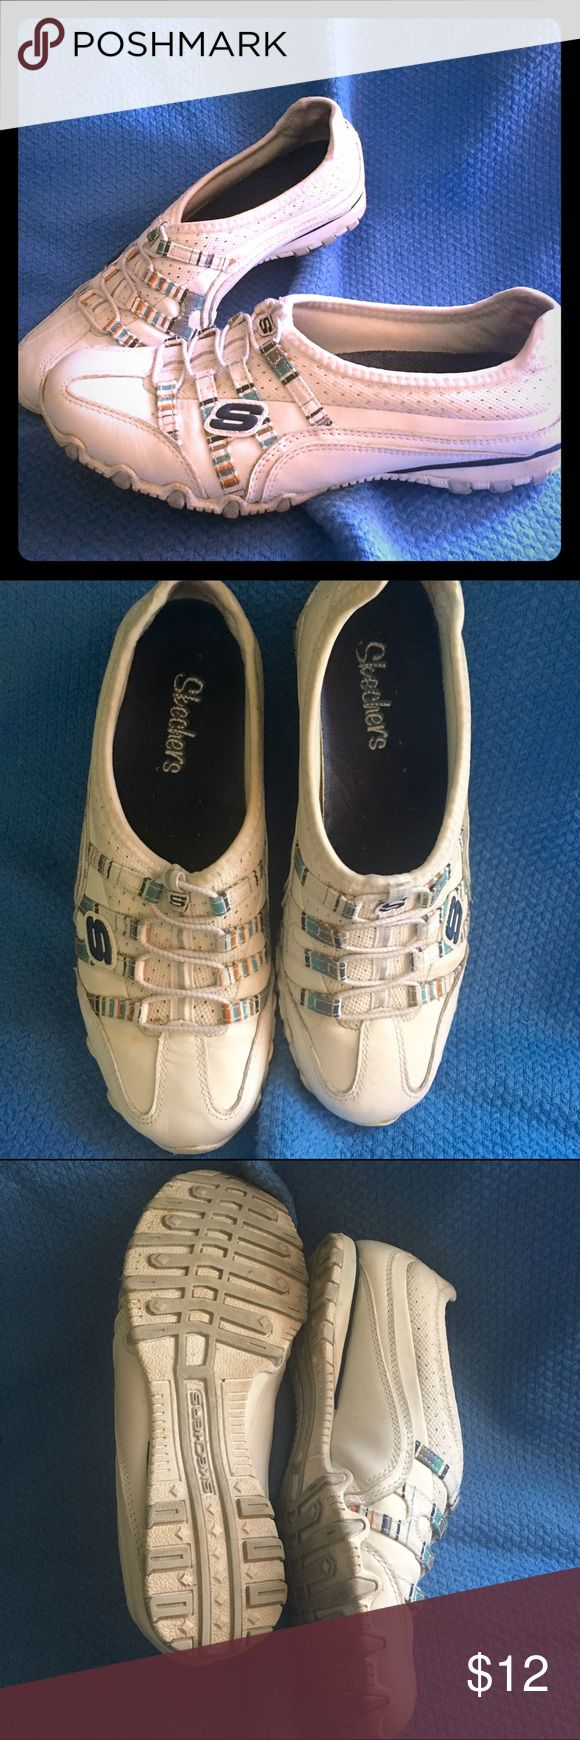 1000 ideas about slip on tennis shoes on